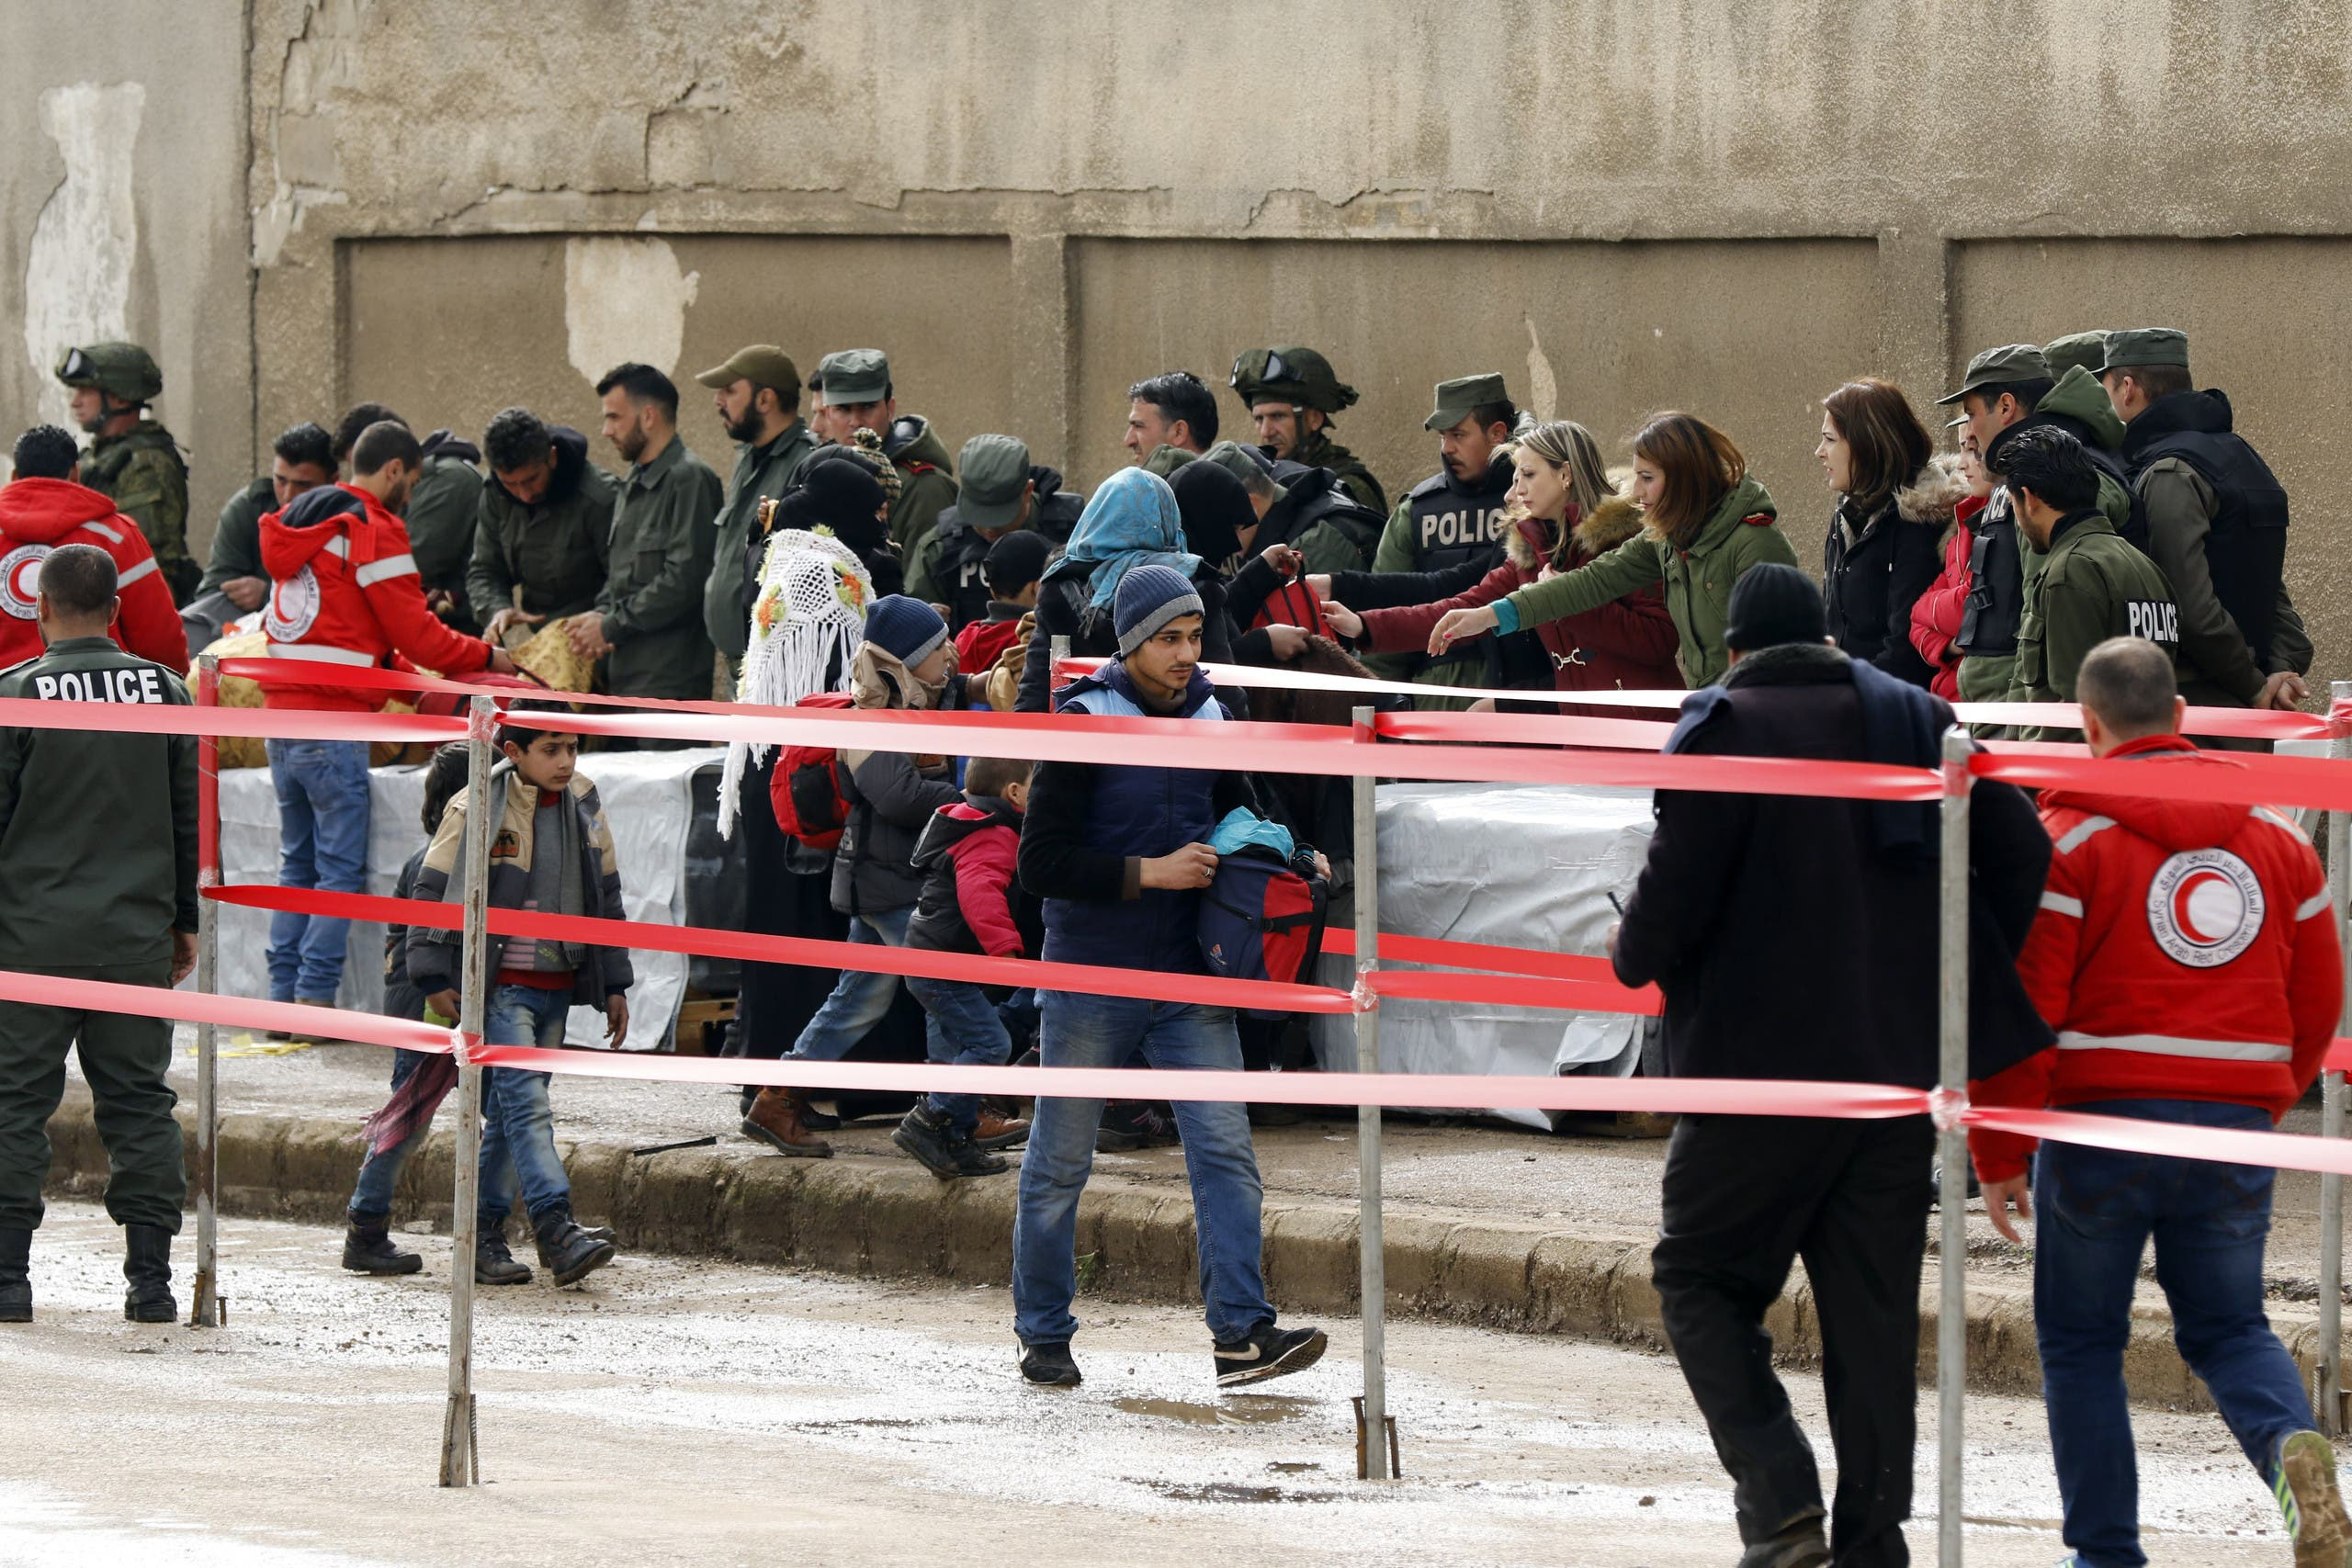 Syrian opposition fighters and their families are searched as they arrive at a checkpoint, manned by regime forces and Red Crescent members, on the edge of the rebel-held Waer neighbourhood in the central city of Homs on March 18, 2017, during the first phase of the Russian-supervised deal to complete the evacuation of fighters and civilians.